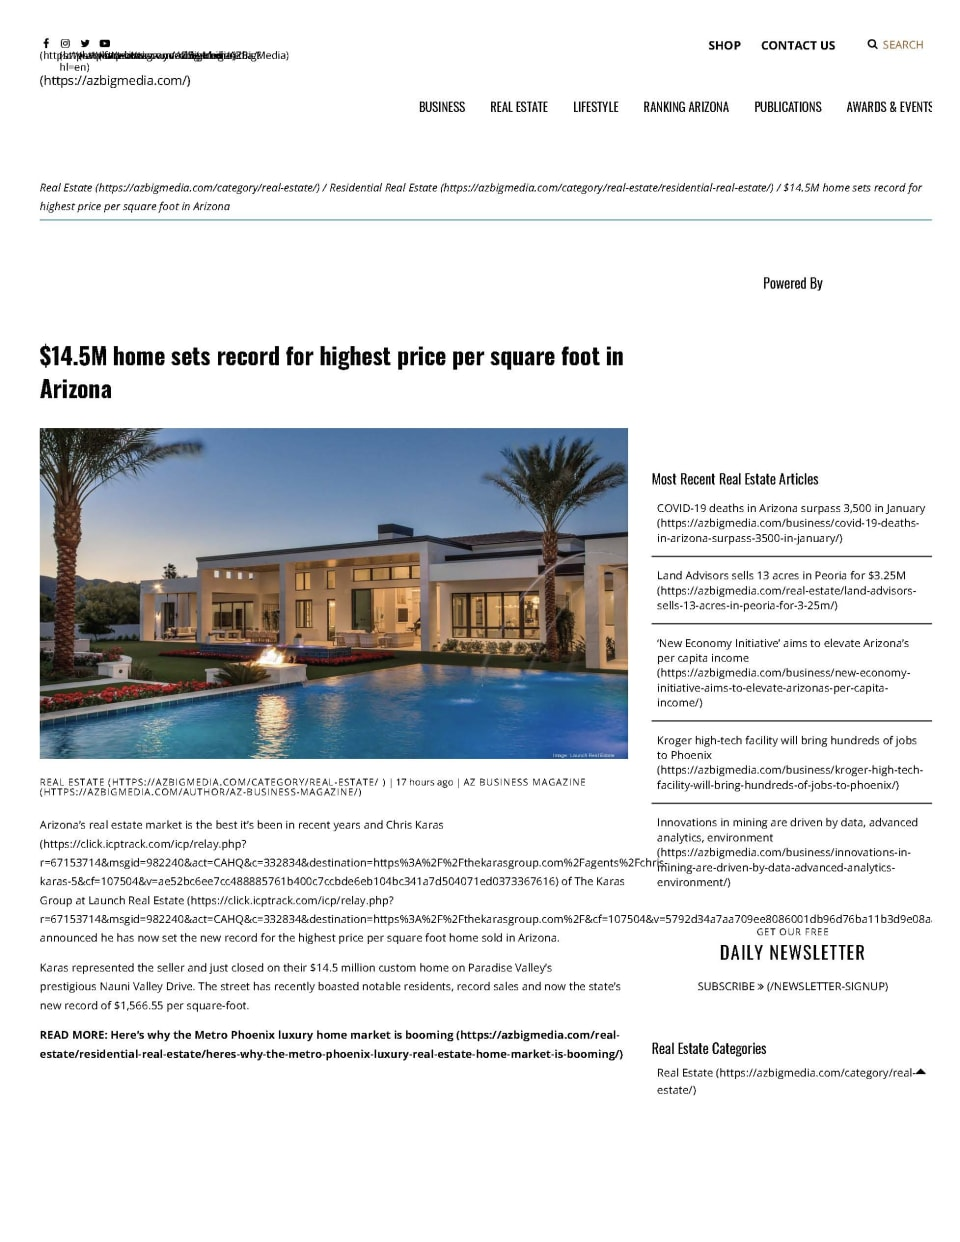 $14.5M home sets record for highest price per square foot in Arizona